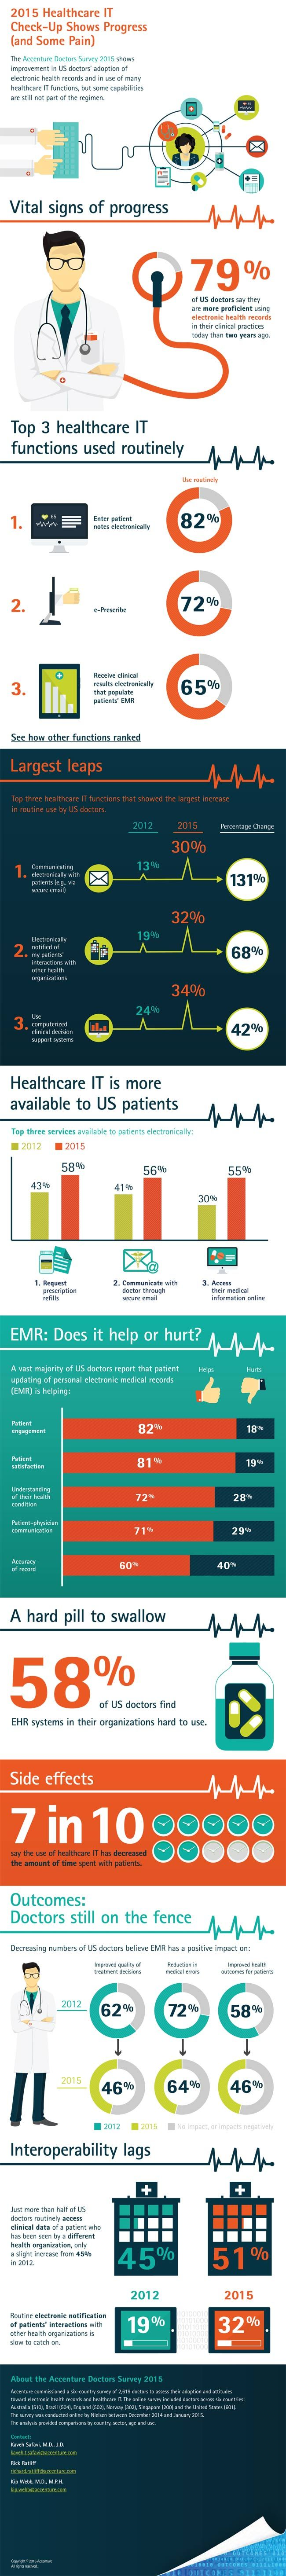 2015 Healthcare IT Check-Up Shows Progress (And Some Pain)—Infographic